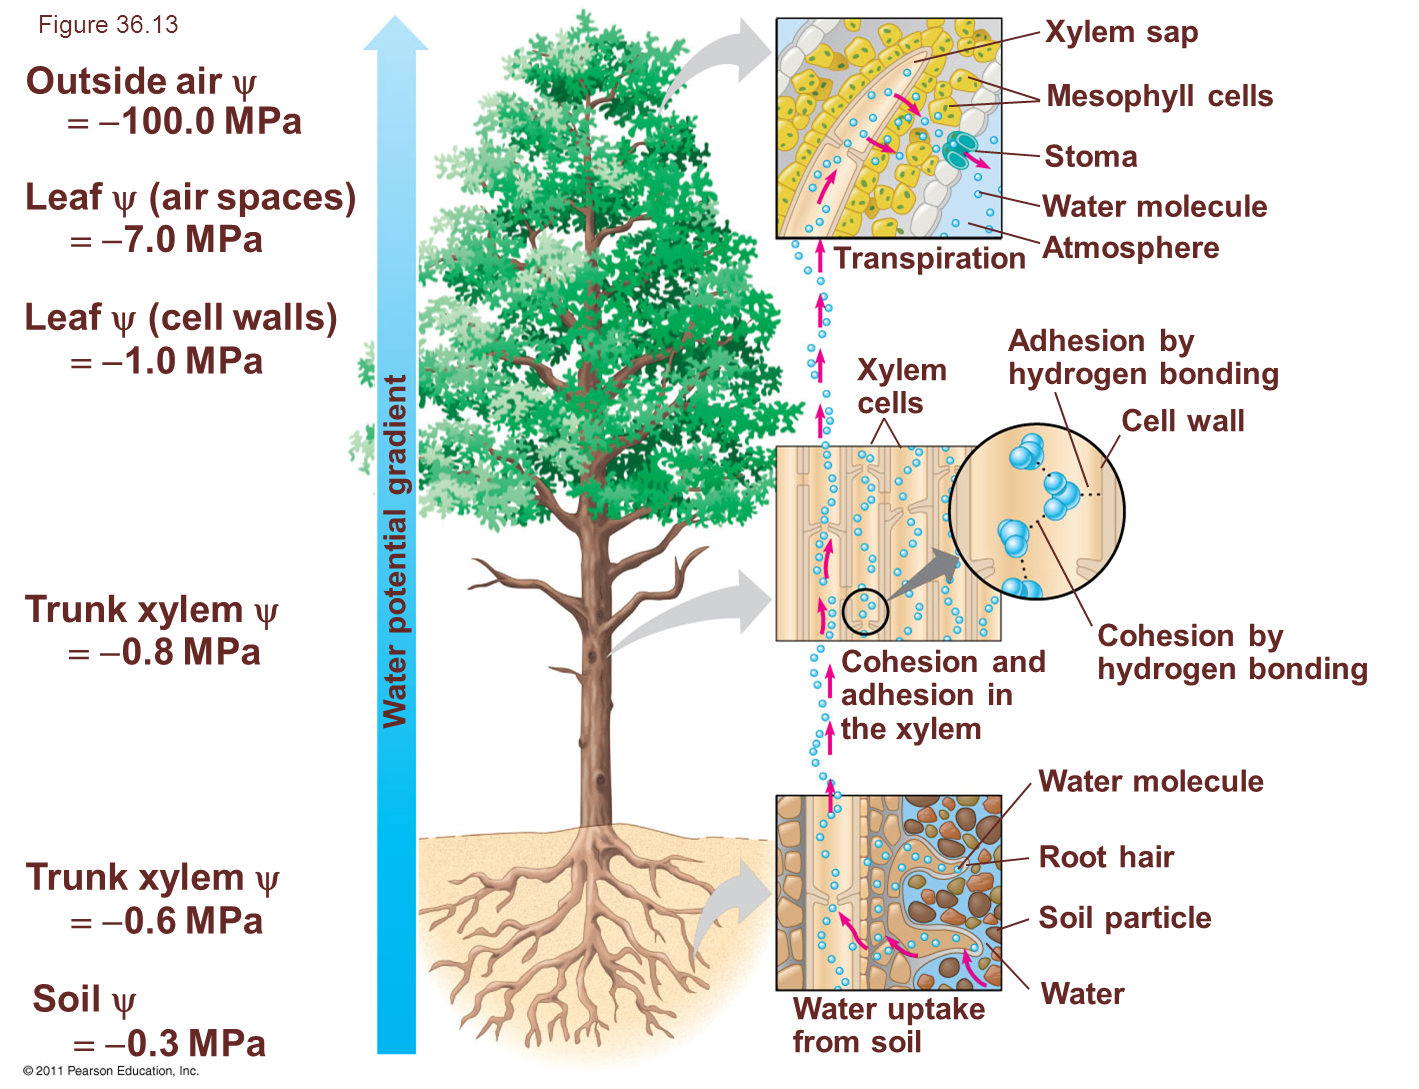 Botany Project Tree Of Water Potential Diagram Molecule Plants Acquire Their Nutrients By The Root Hairs Absorbing Soil Solute Which Includes Molecules And Dissolved Mineral Ions Solution Is Then